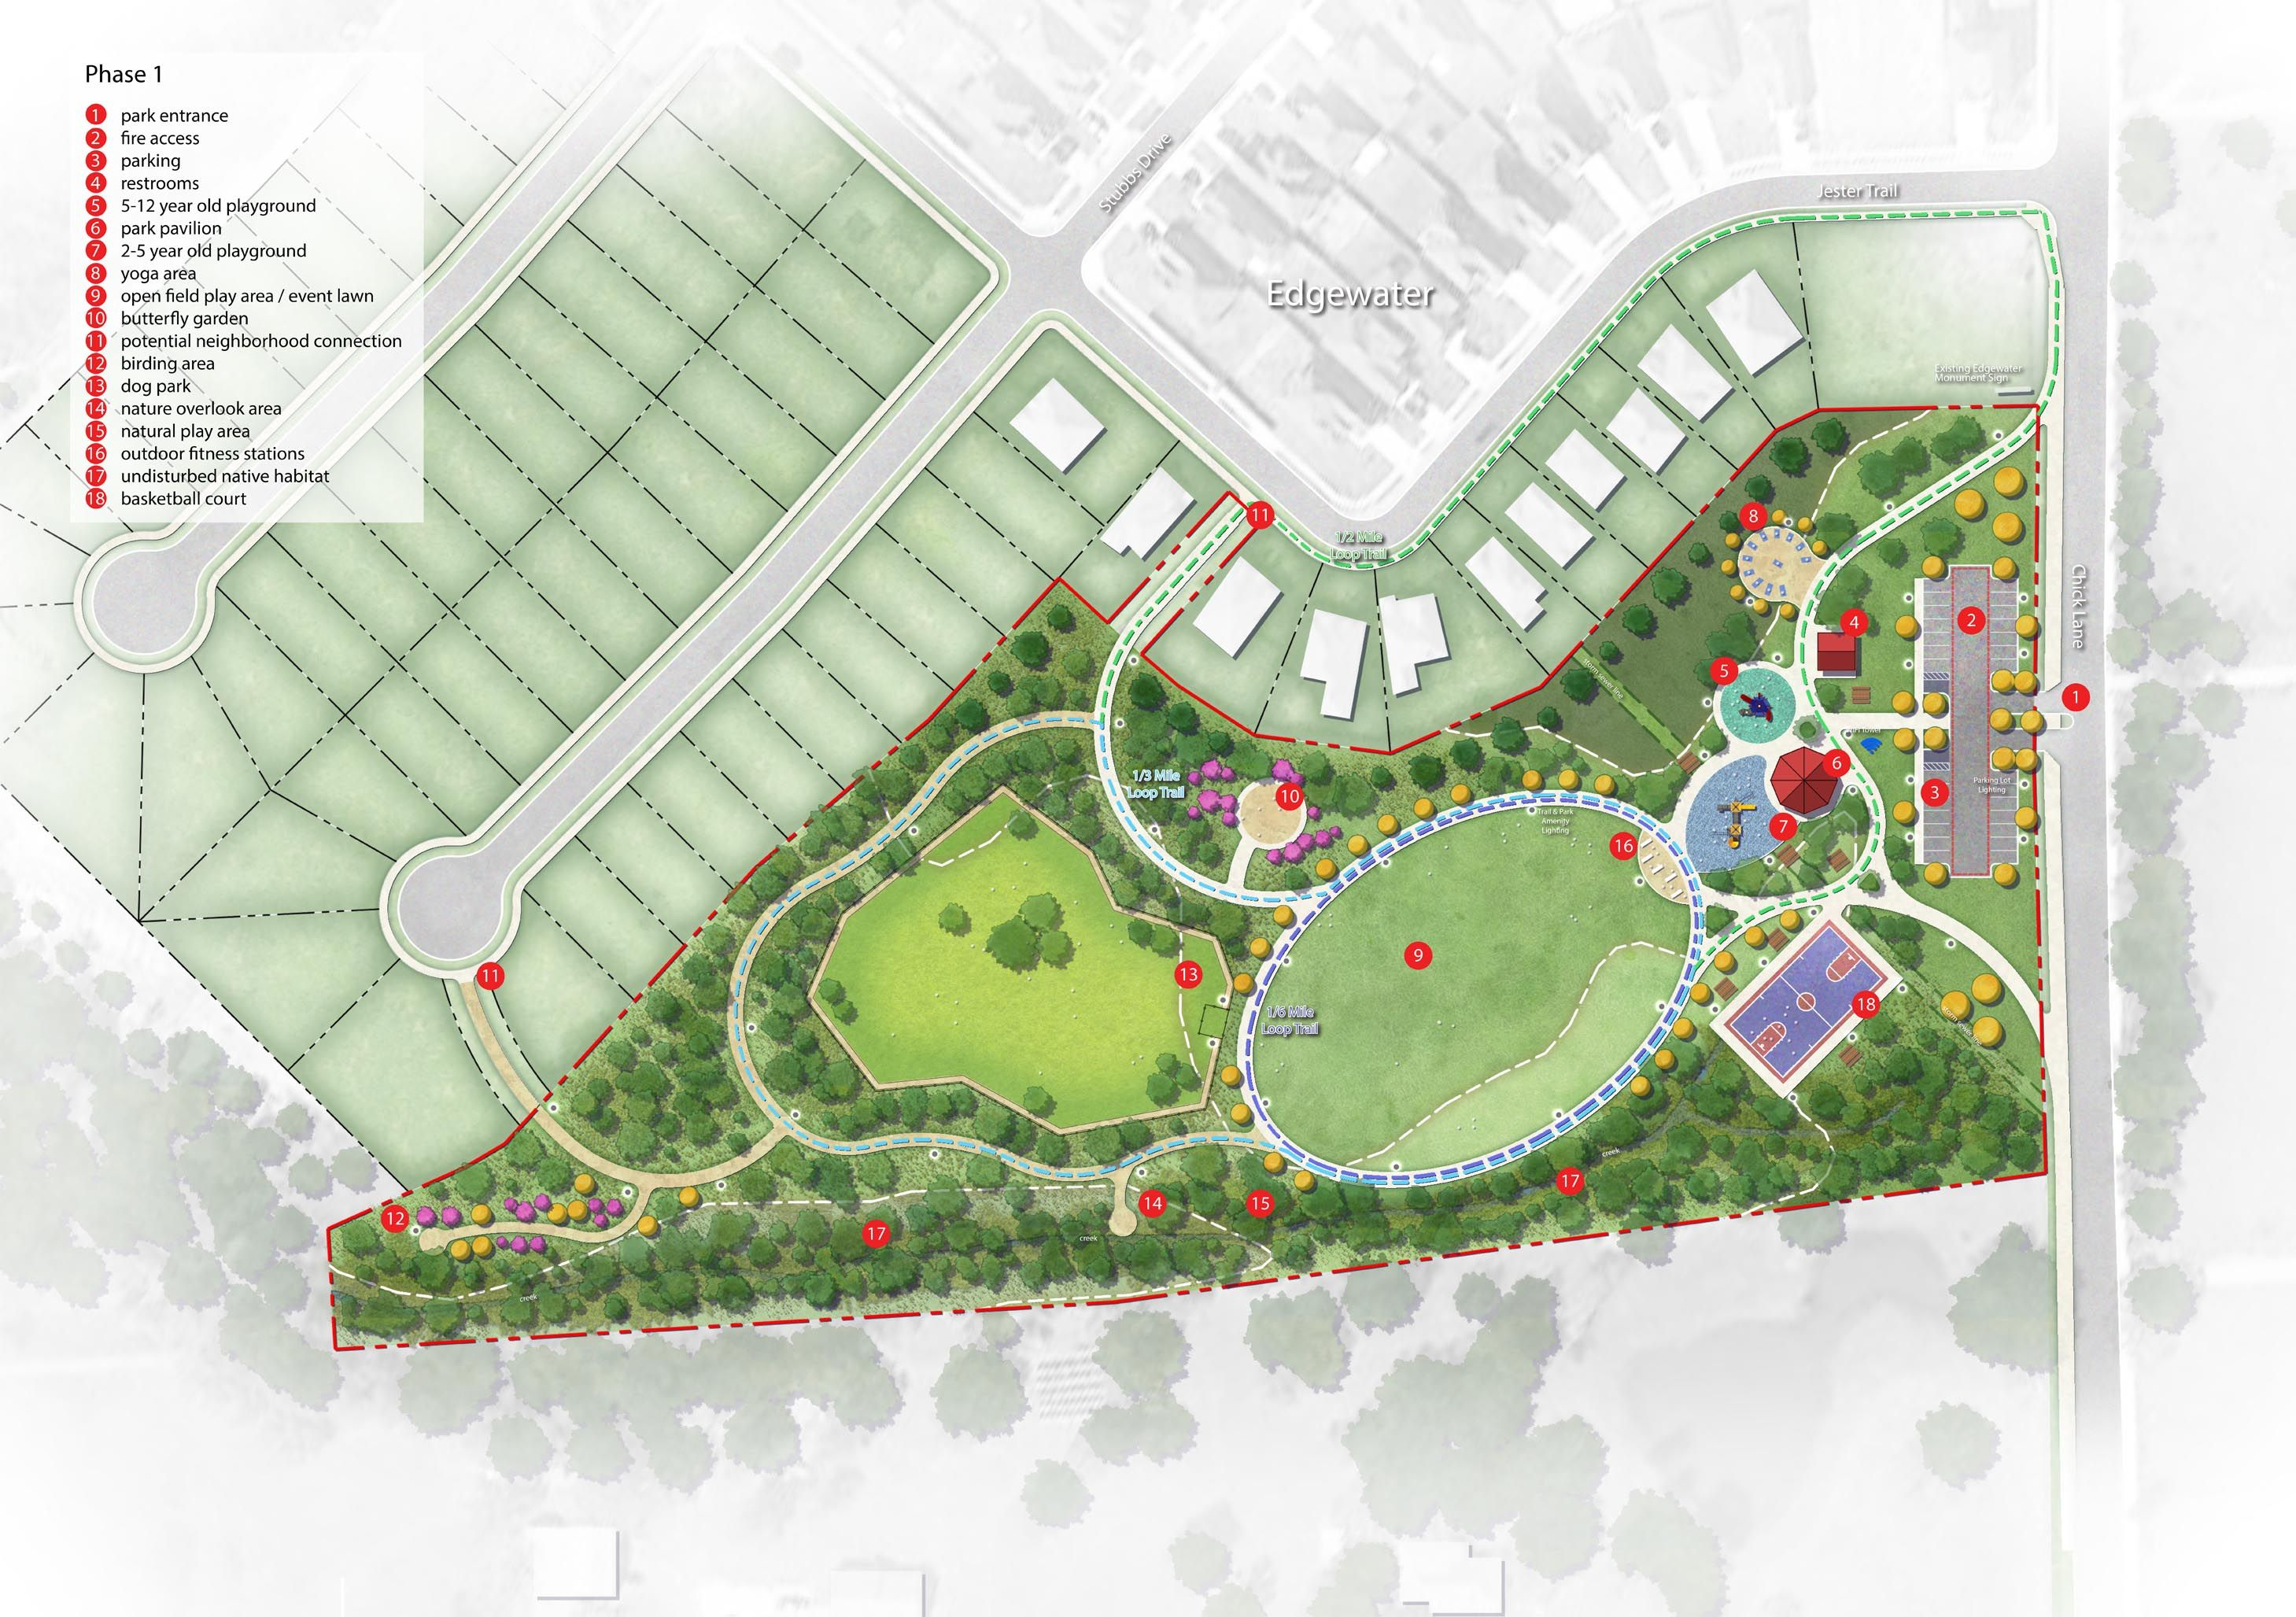 Community park plan rendering landscape architecture for Plan rendering ideas